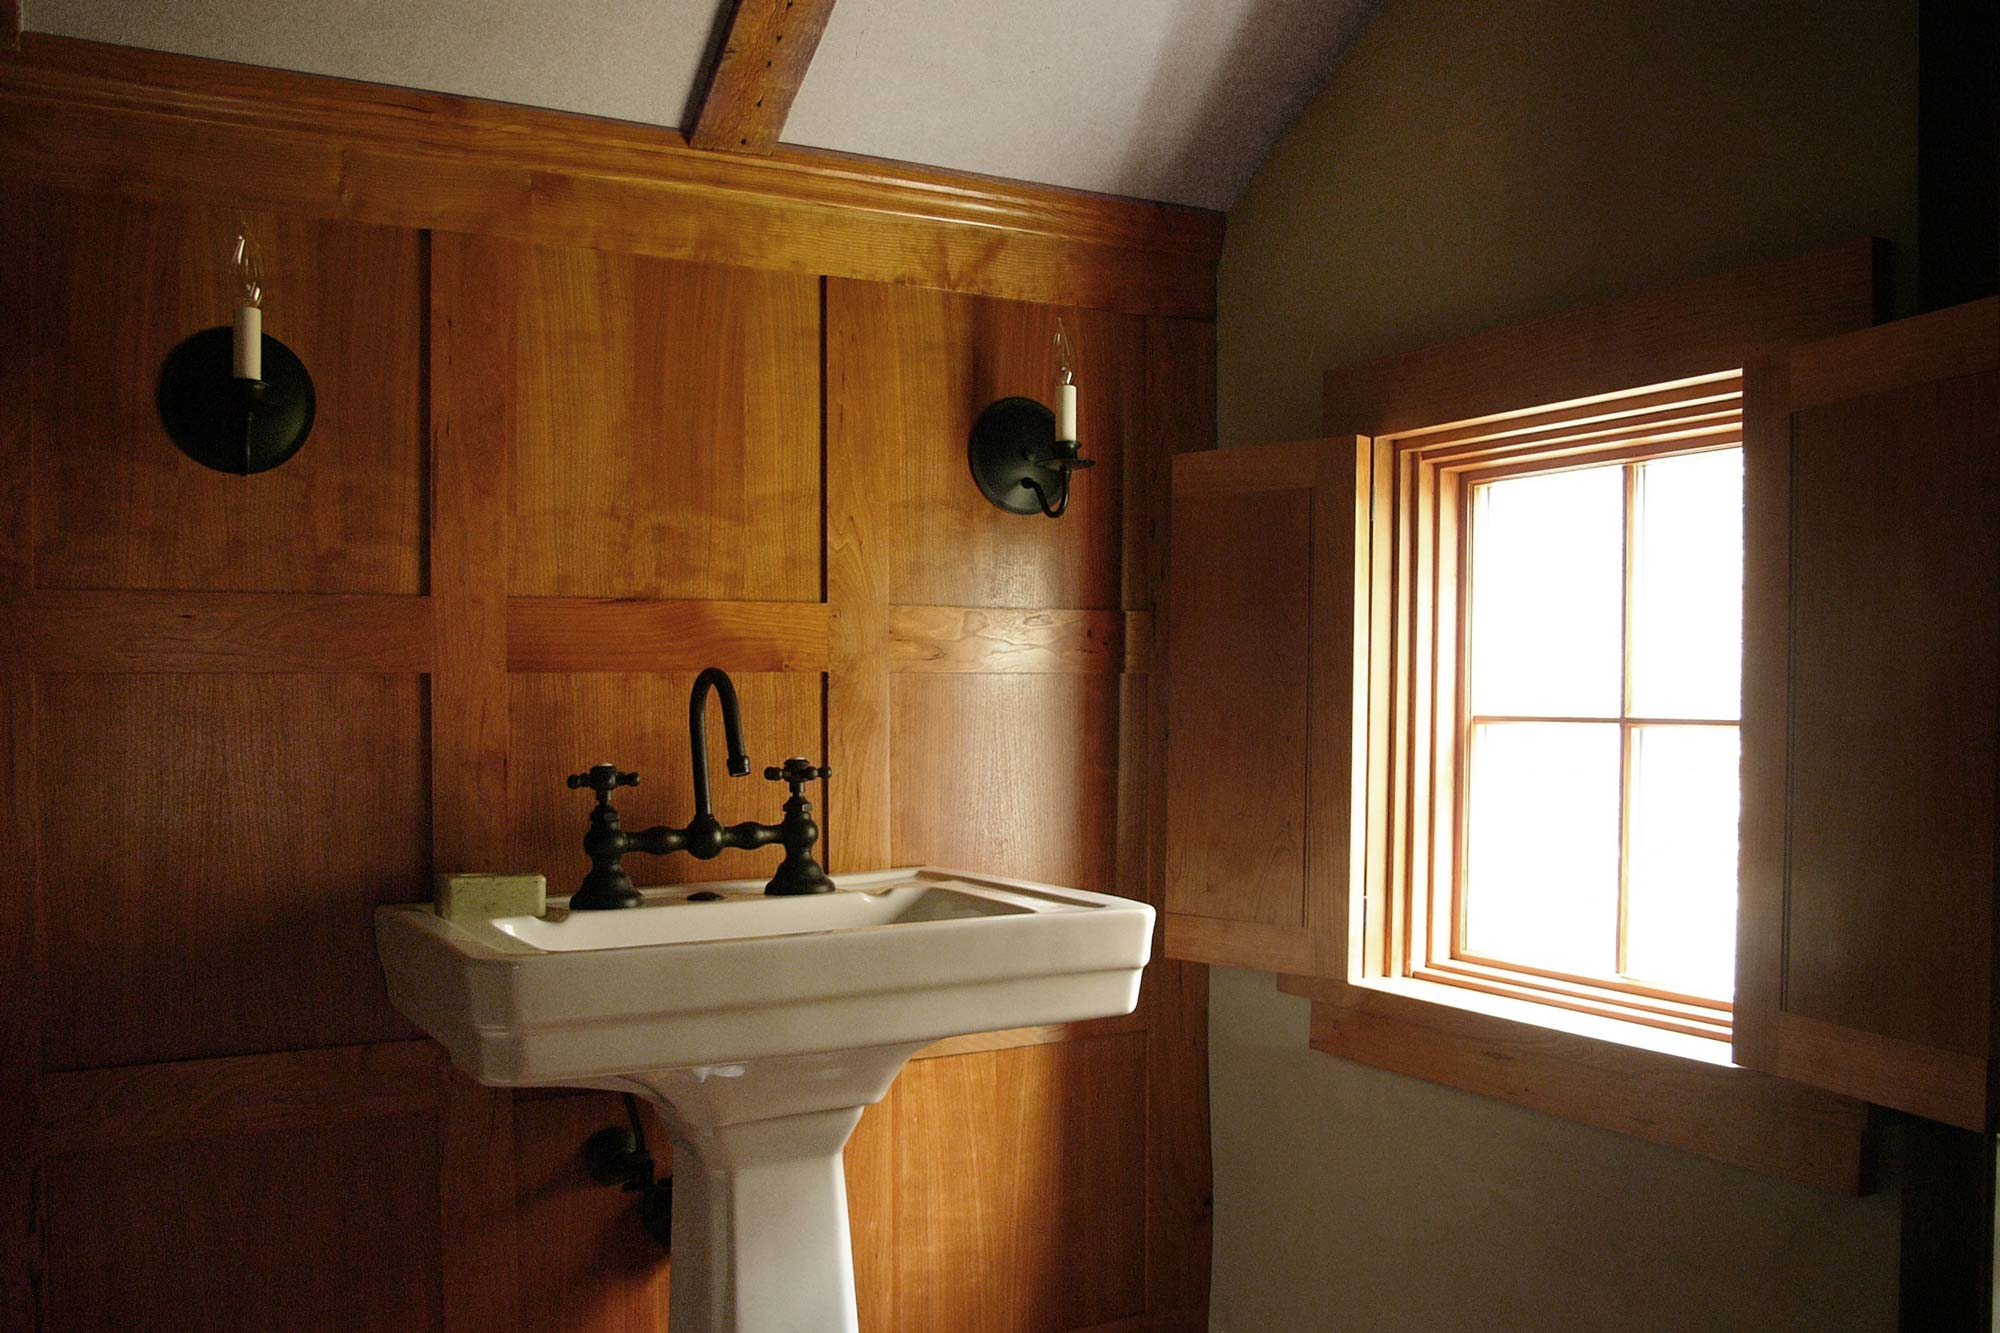 R-cottage-bathroom-sink-x.jpg